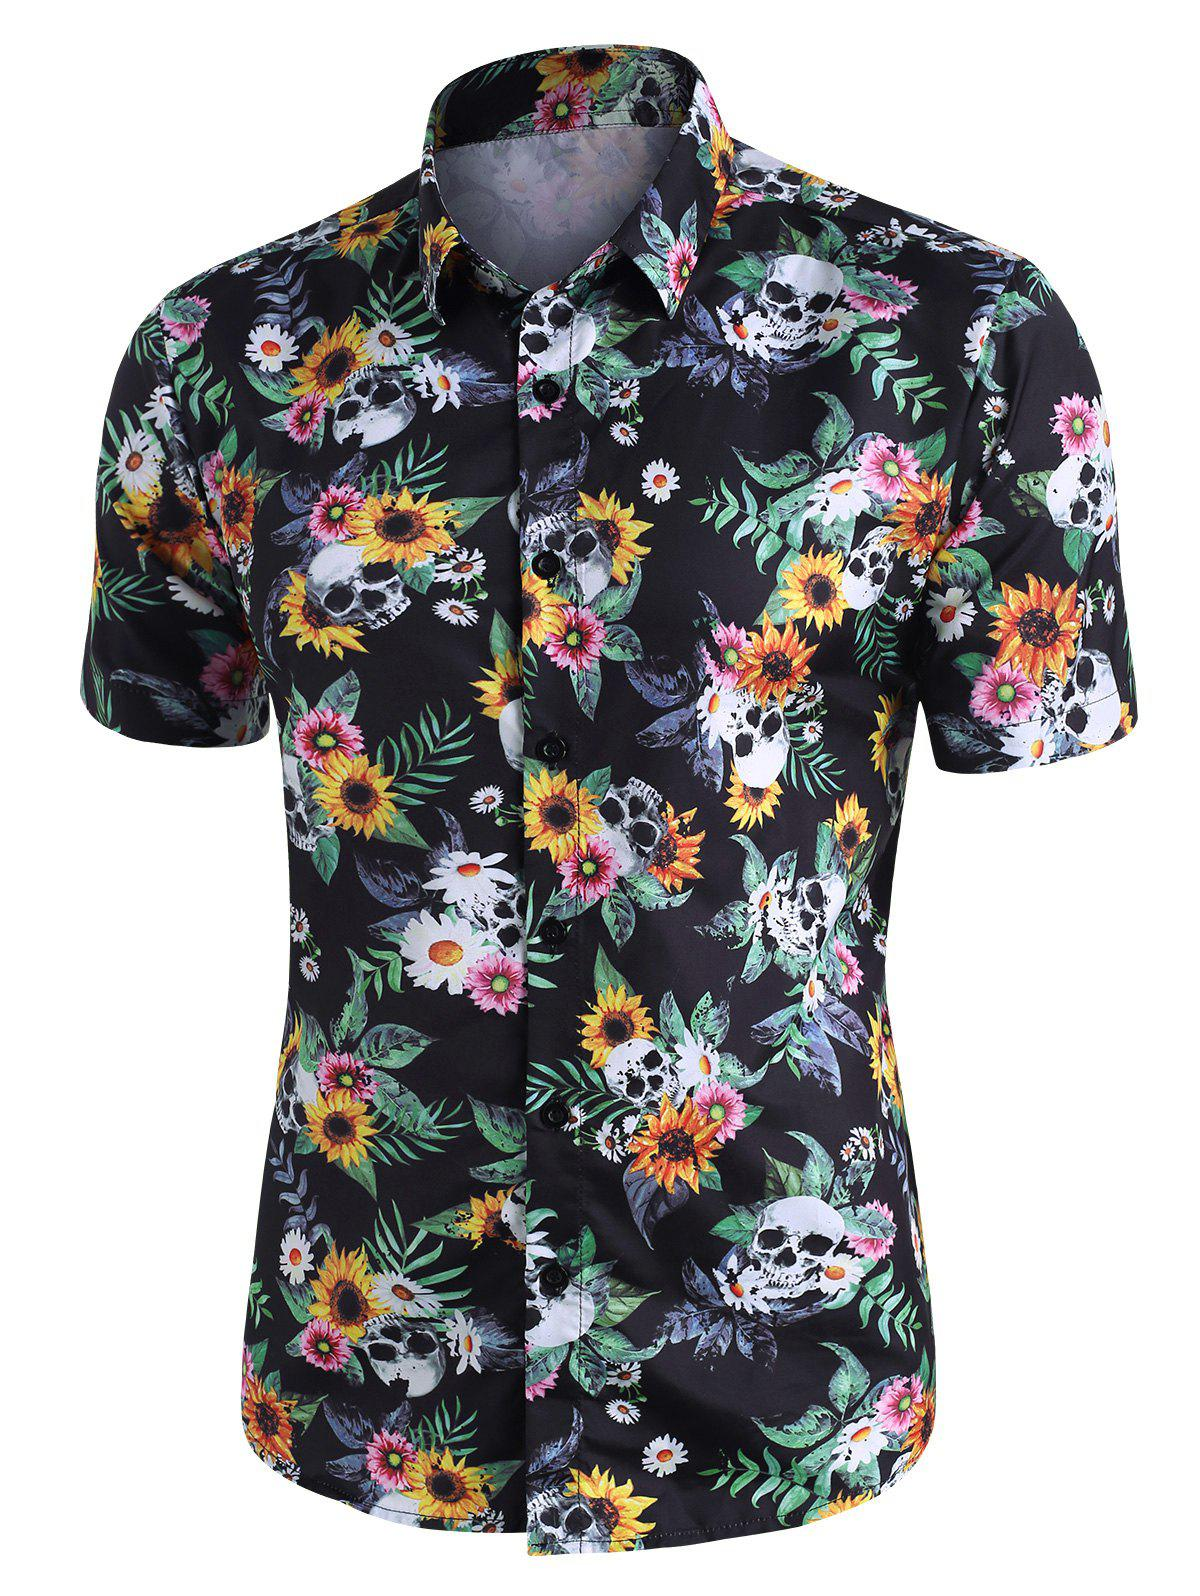 Fancy Skull Ditsy Floral Button Up Casual Shirt